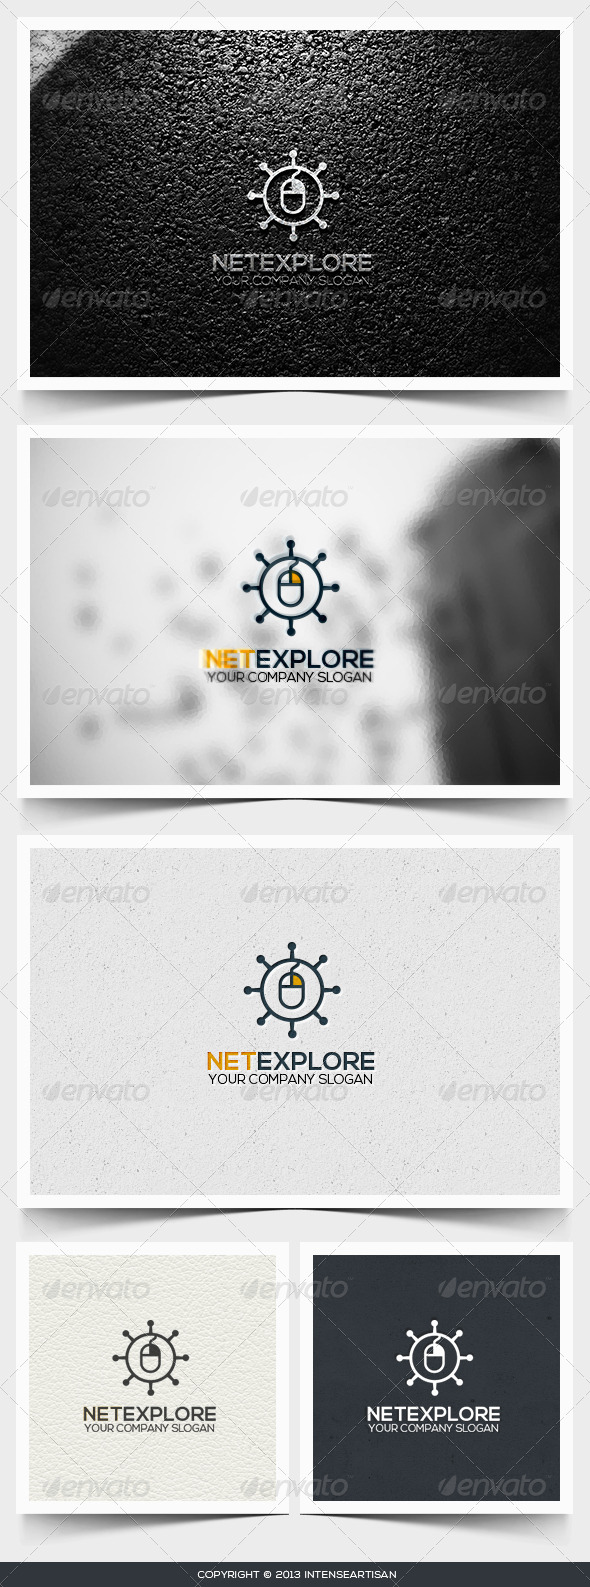 Net Explore Logo Template - Objects Logo Templates